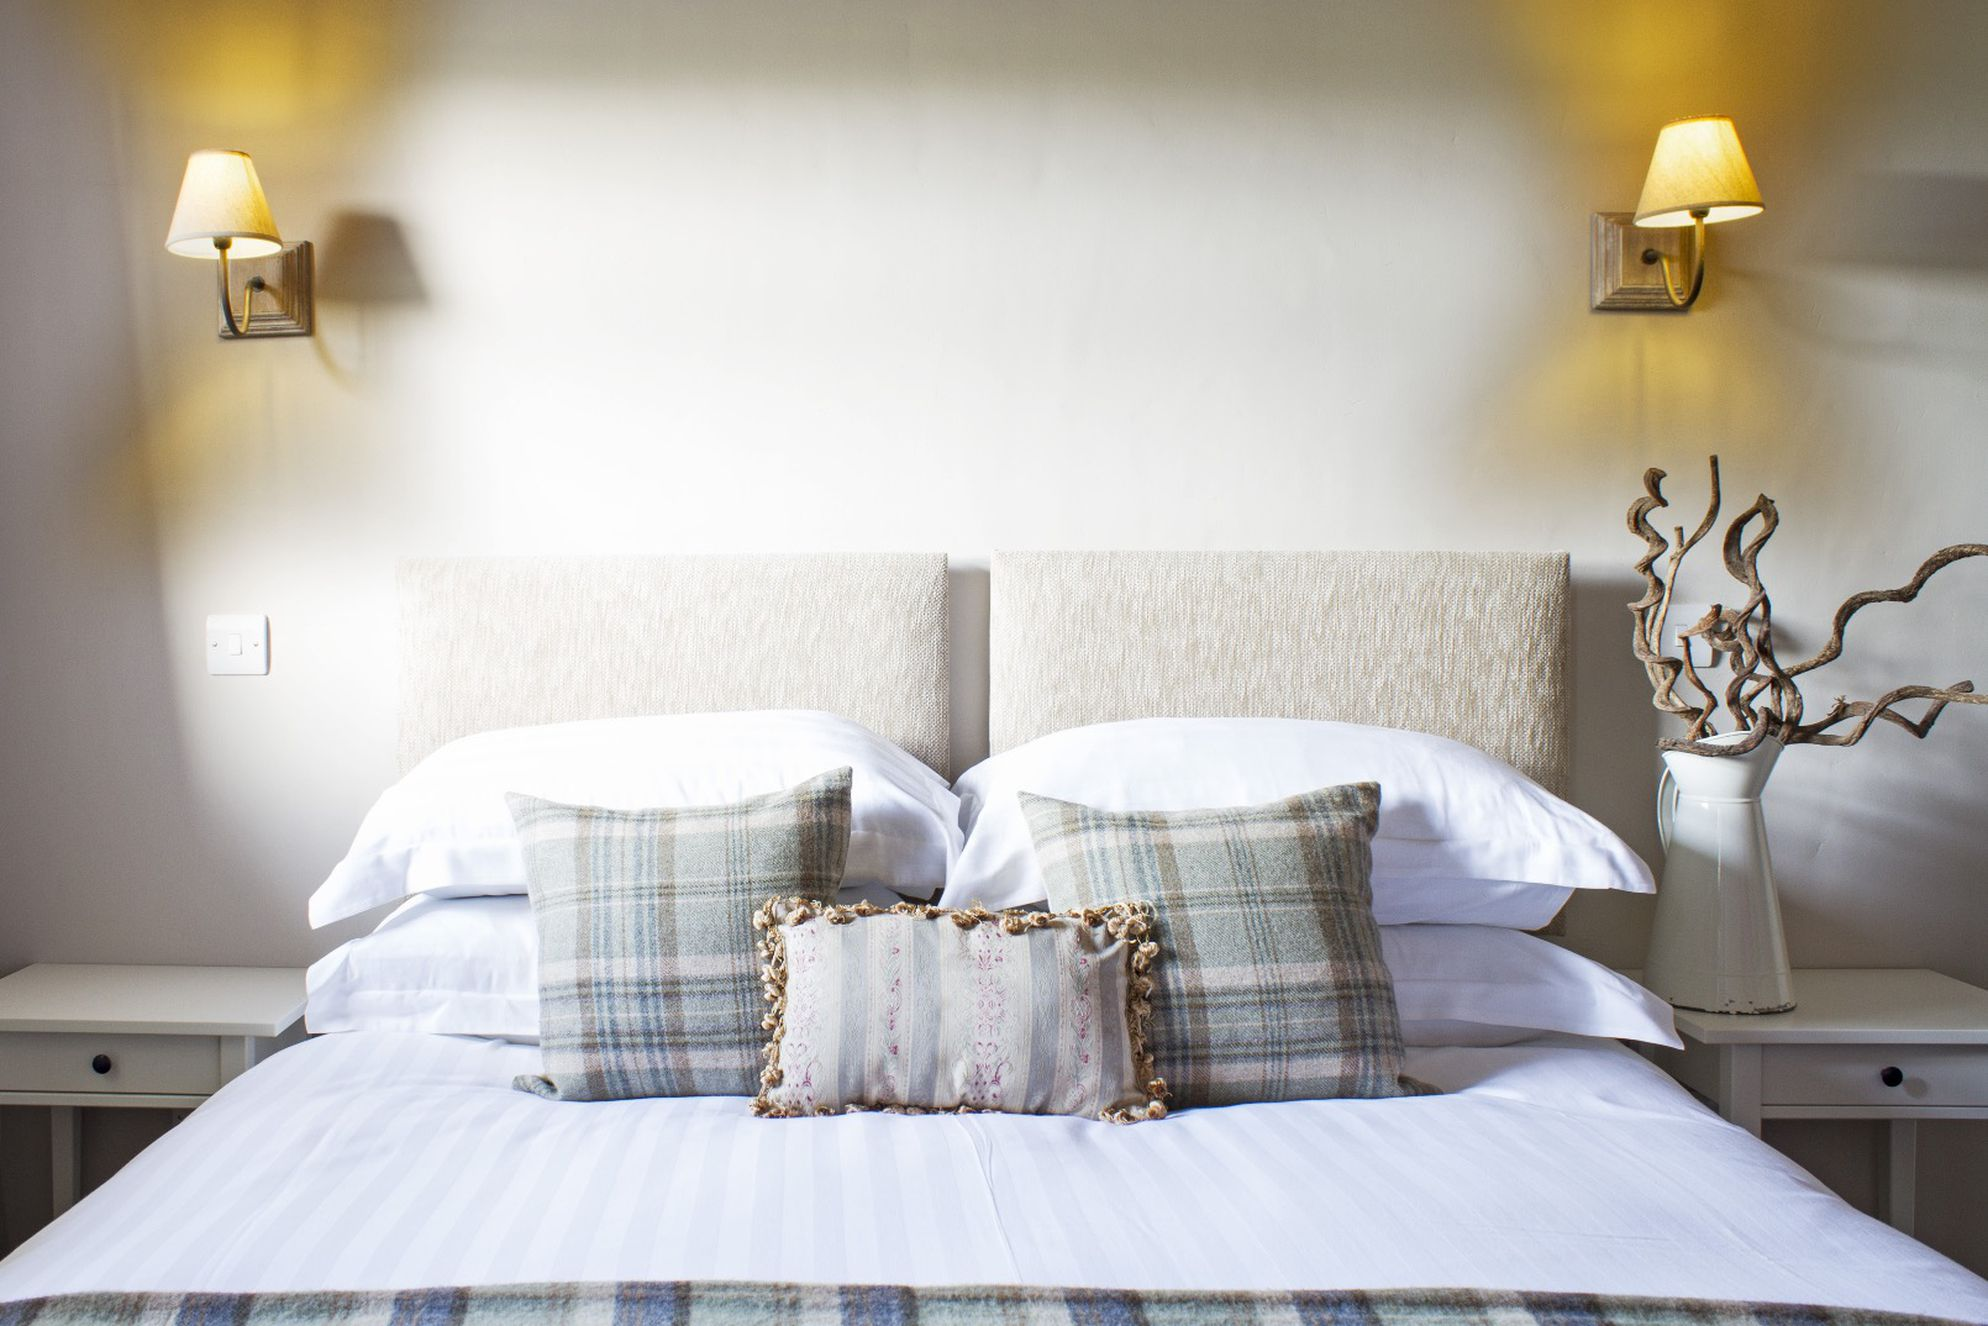 Light and airy bedroom with white linen and tartan pillows